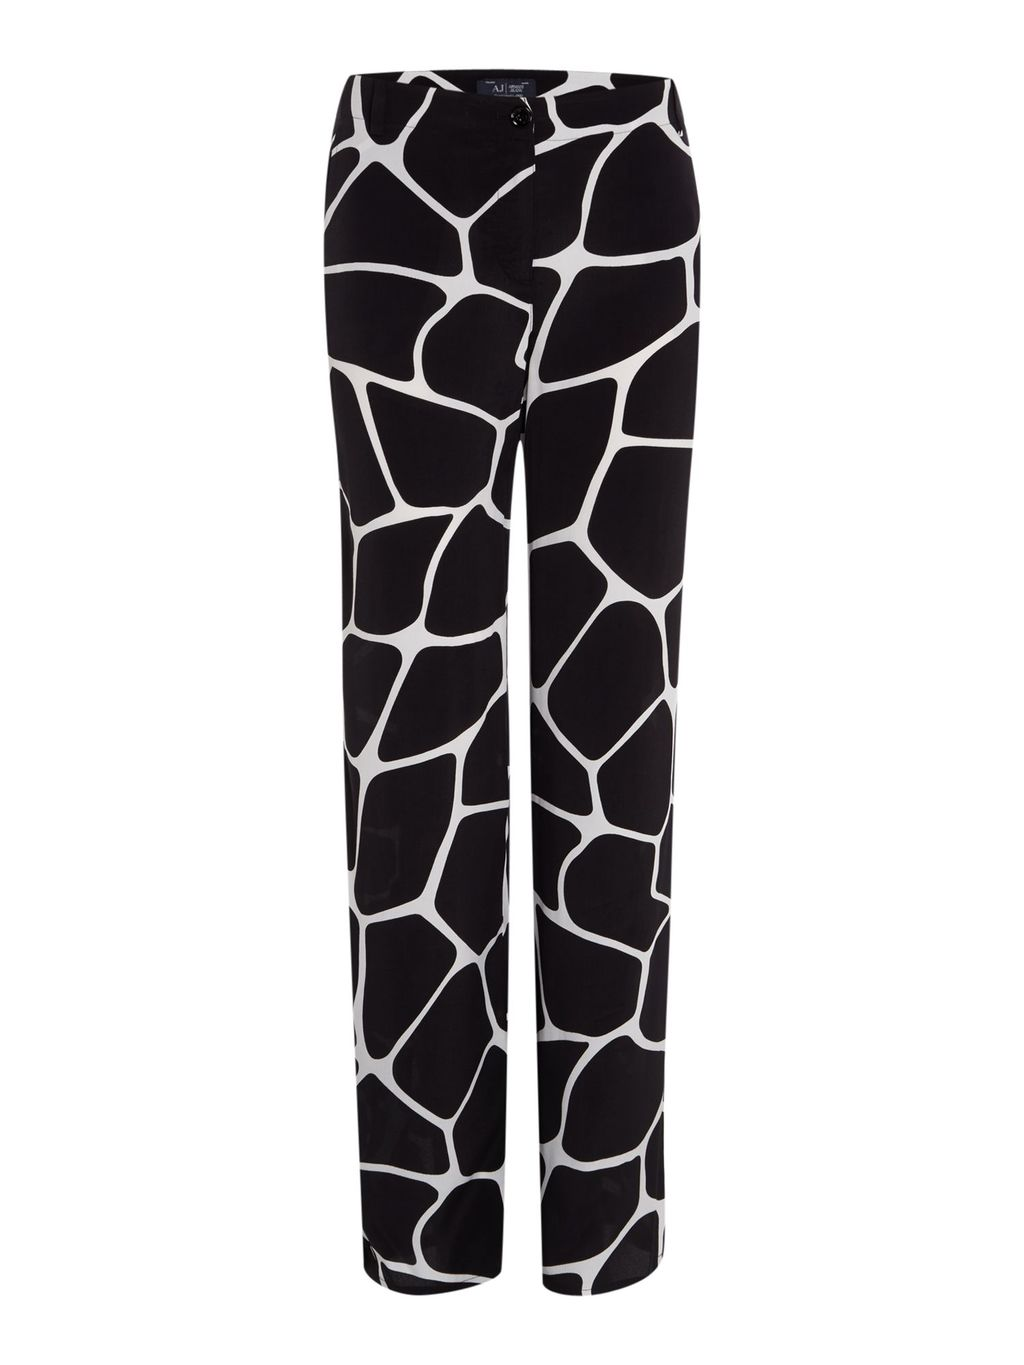 Wide Leg Giraffe Print Trouser, Black - length: standard; waist: mid/regular rise; secondary colour: ivory/cream; predominant colour: black; occasions: evening; fibres: viscose/rayon - 100%; fit: wide leg; pattern type: fabric; pattern: patterned/print; texture group: woven light midweight; style: standard; pattern size: standard (bottom); season: s/s 2016